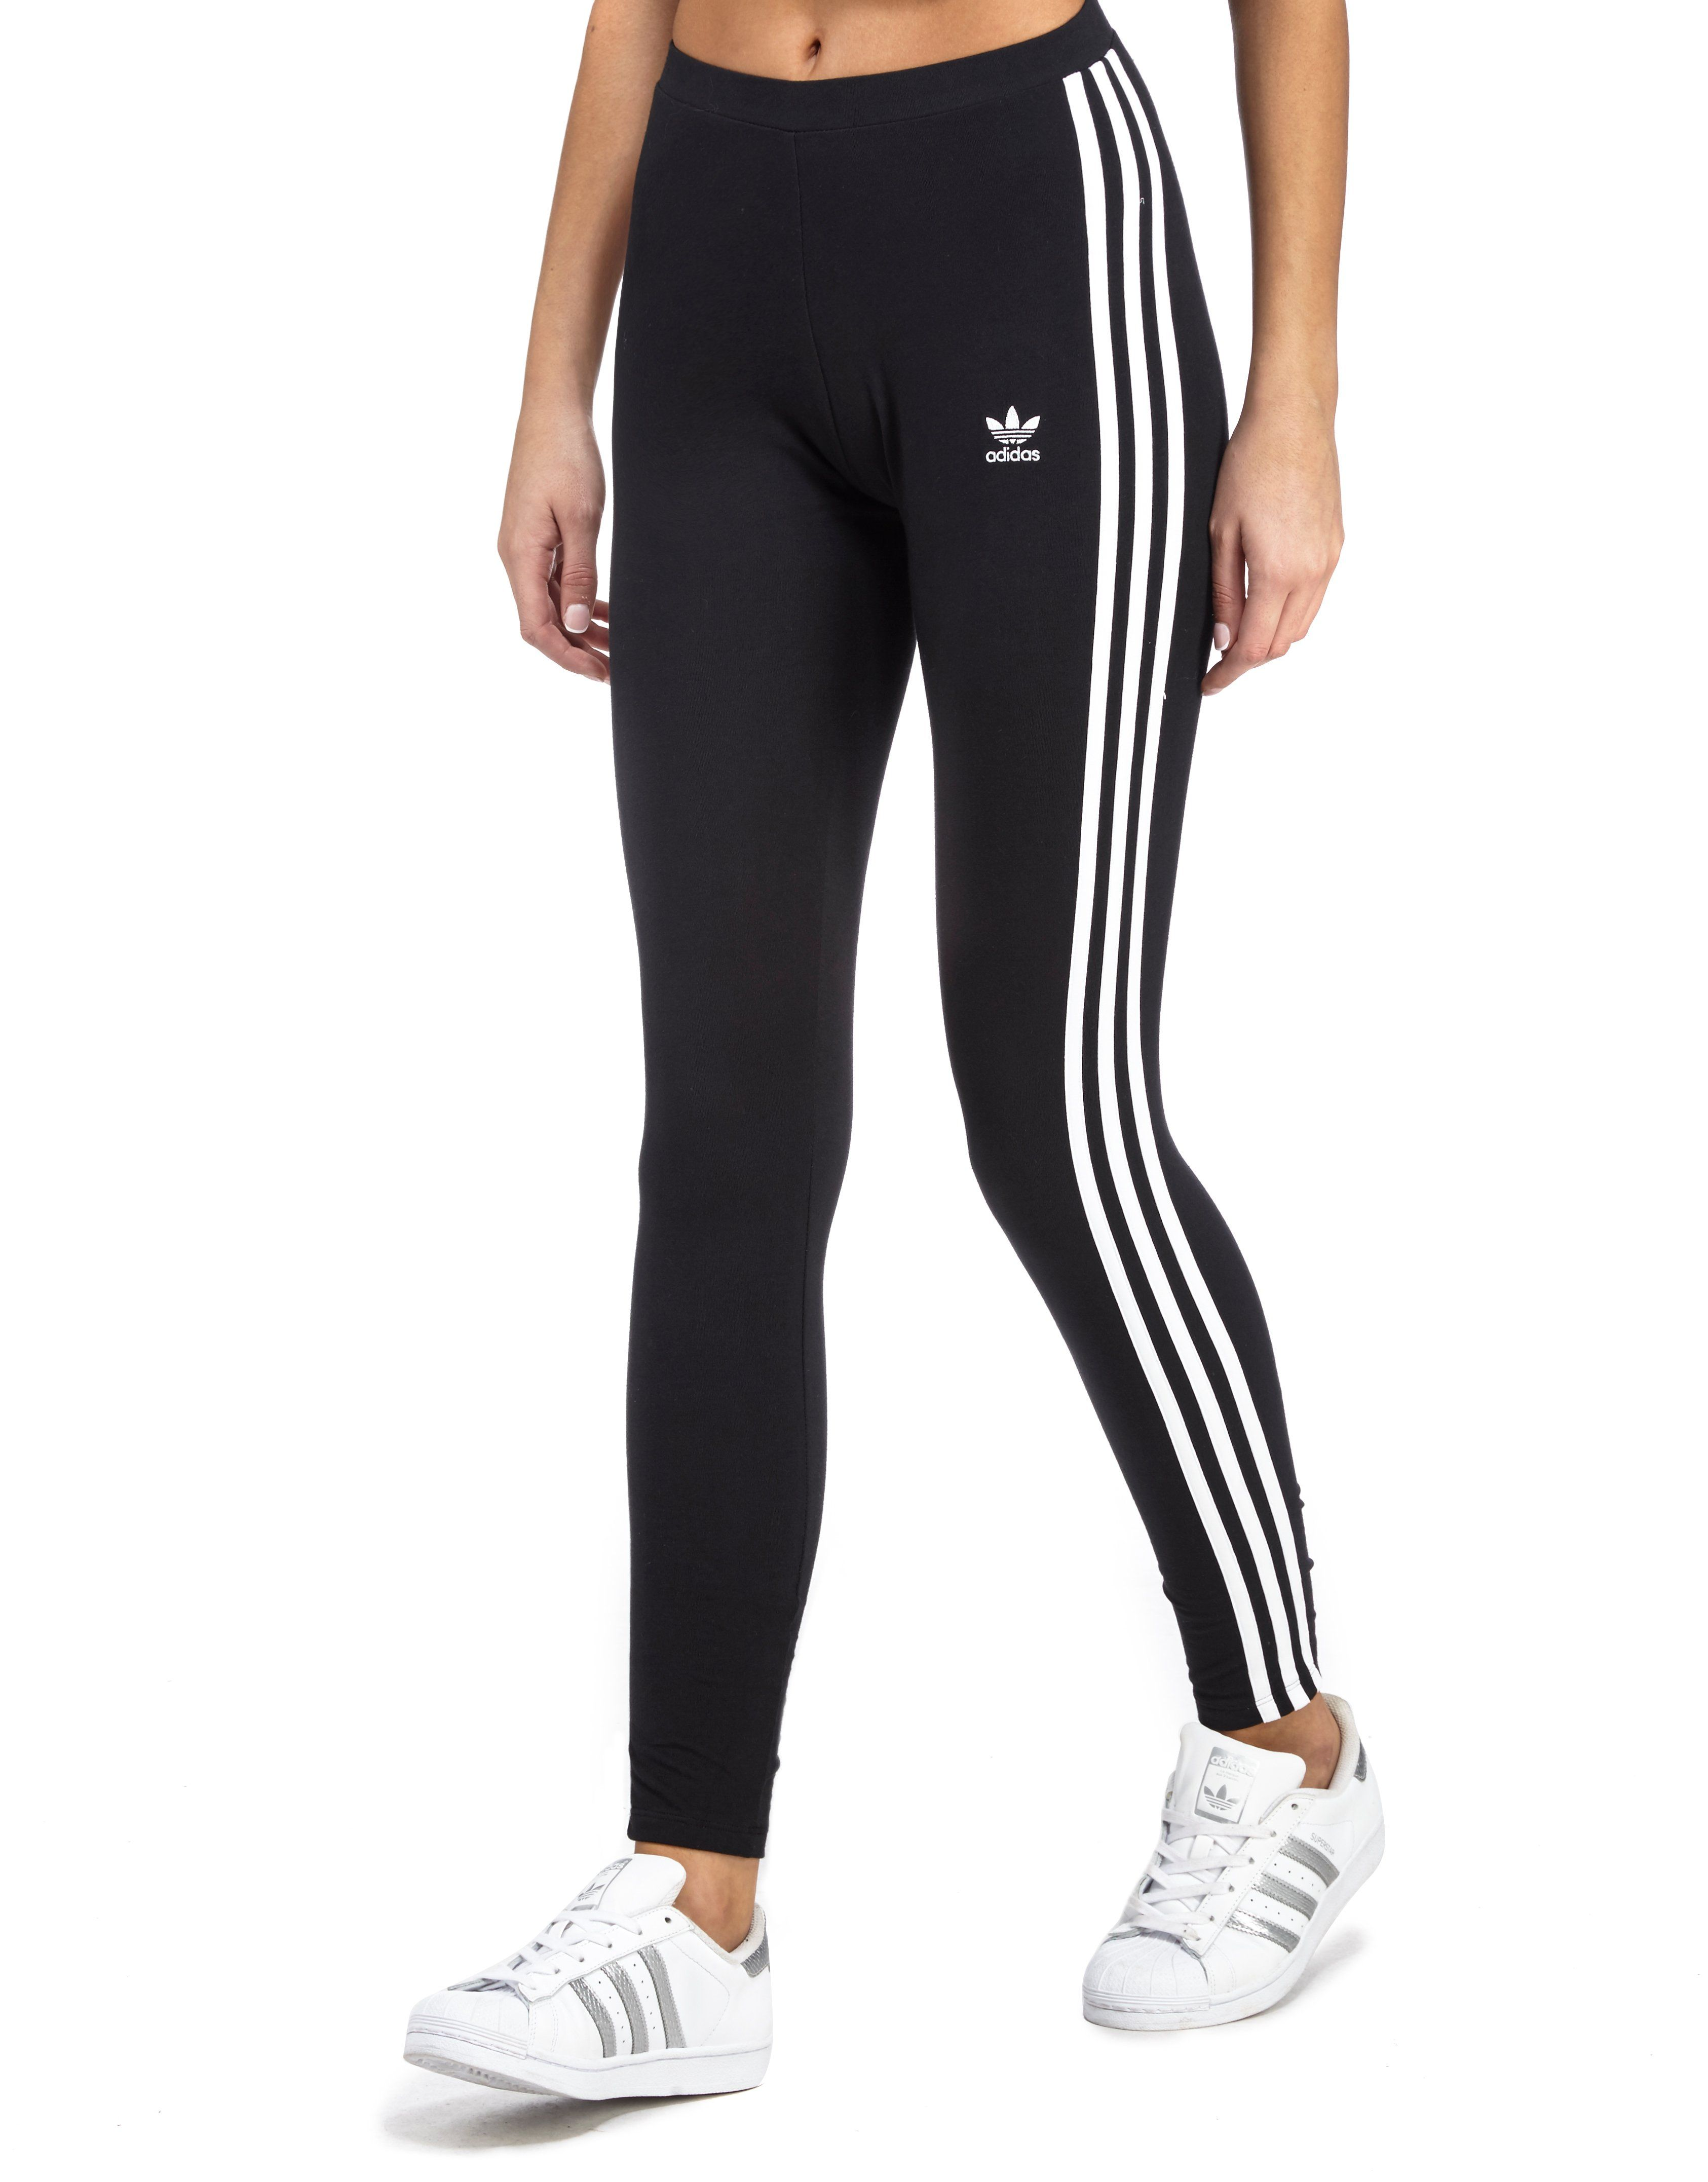 adidas originals 3 stripes leggings jd sports. Black Bedroom Furniture Sets. Home Design Ideas